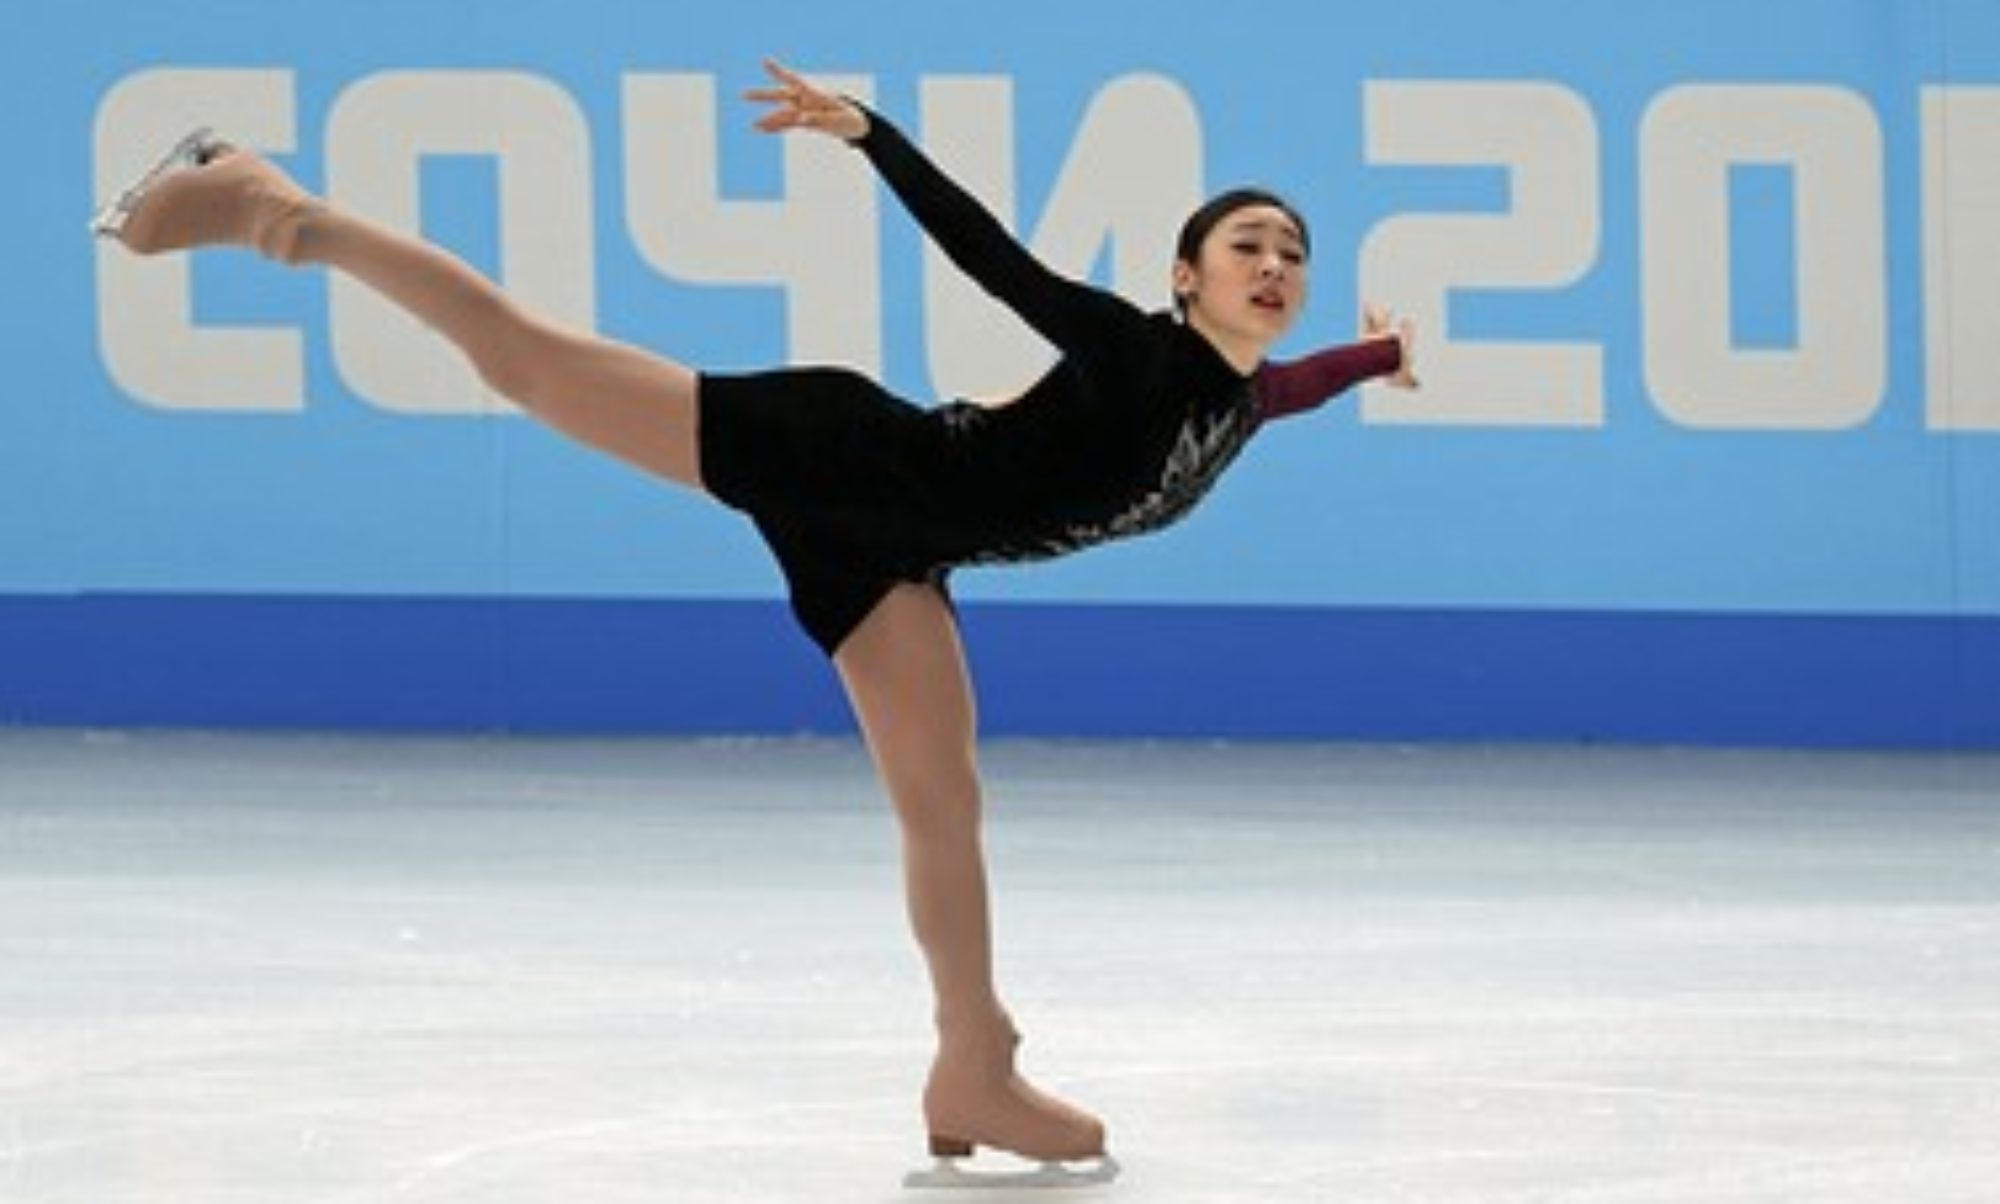 kimyuna.co.uk